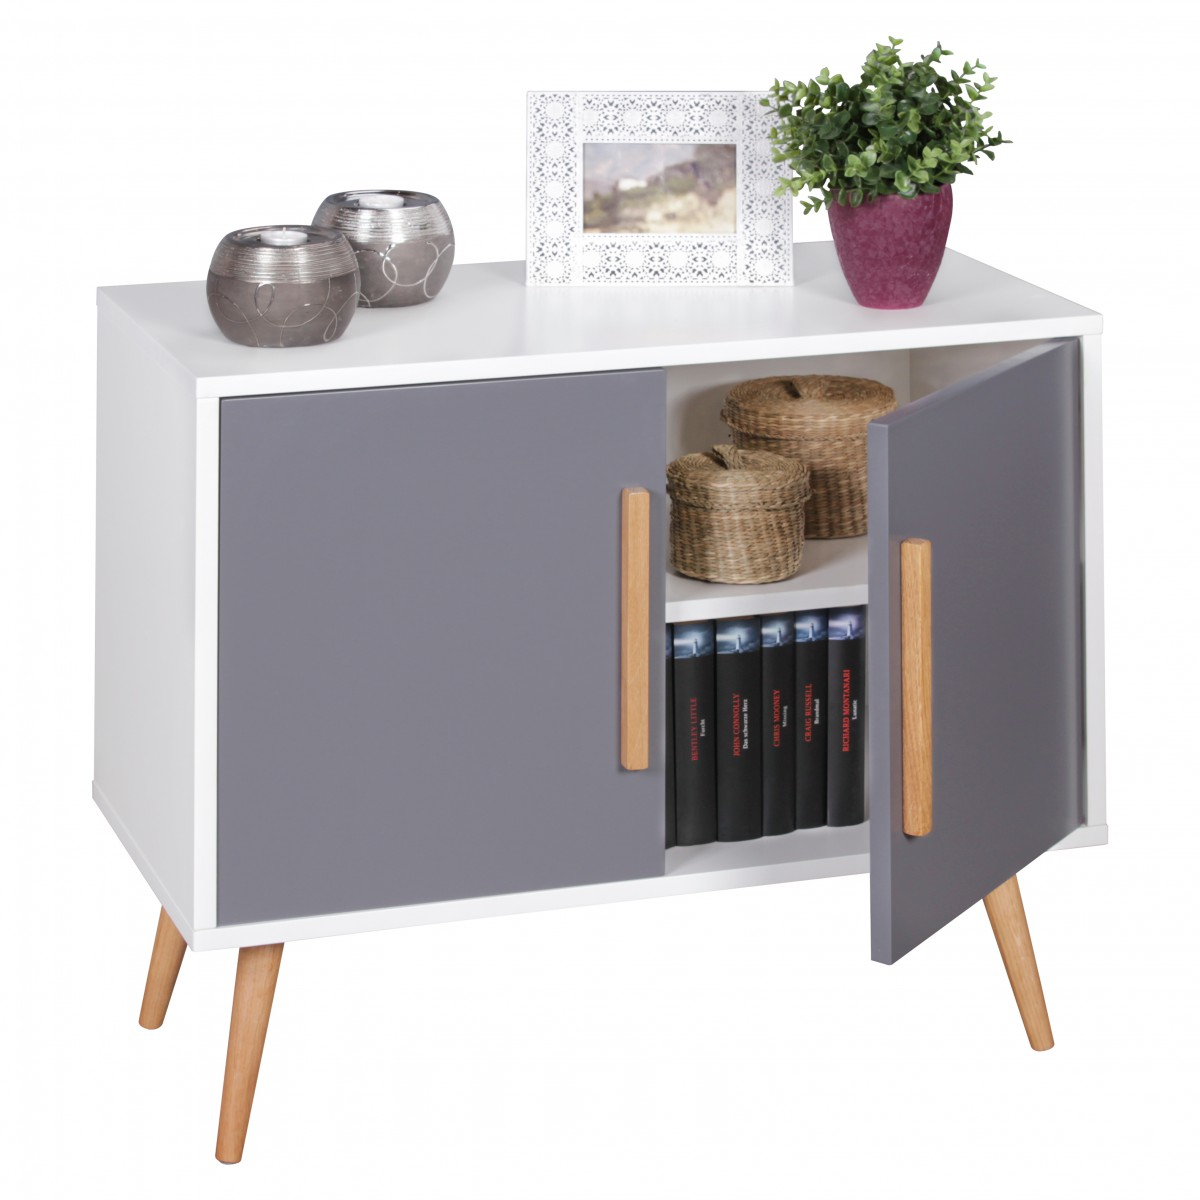 wohnling sideboard 80x70x40 cm scanio kommode mit 2 t ren. Black Bedroom Furniture Sets. Home Design Ideas